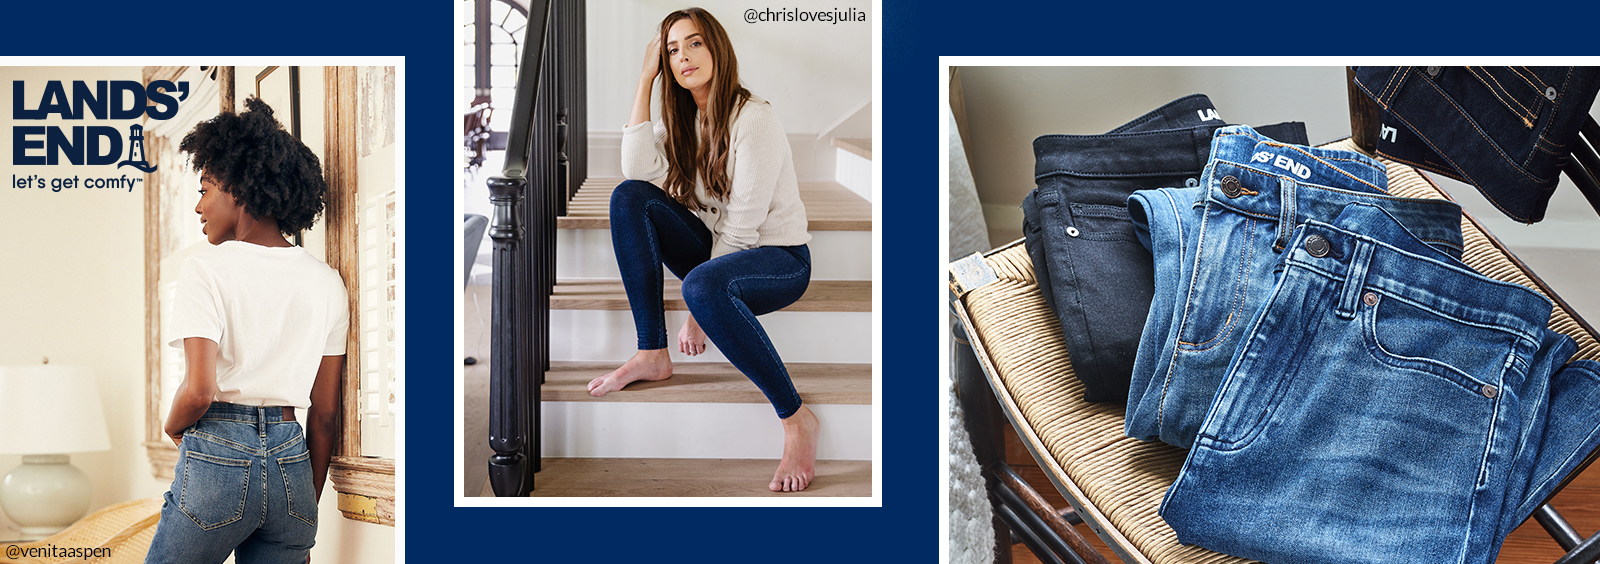 How to Find the Best Comfy Jeans for You